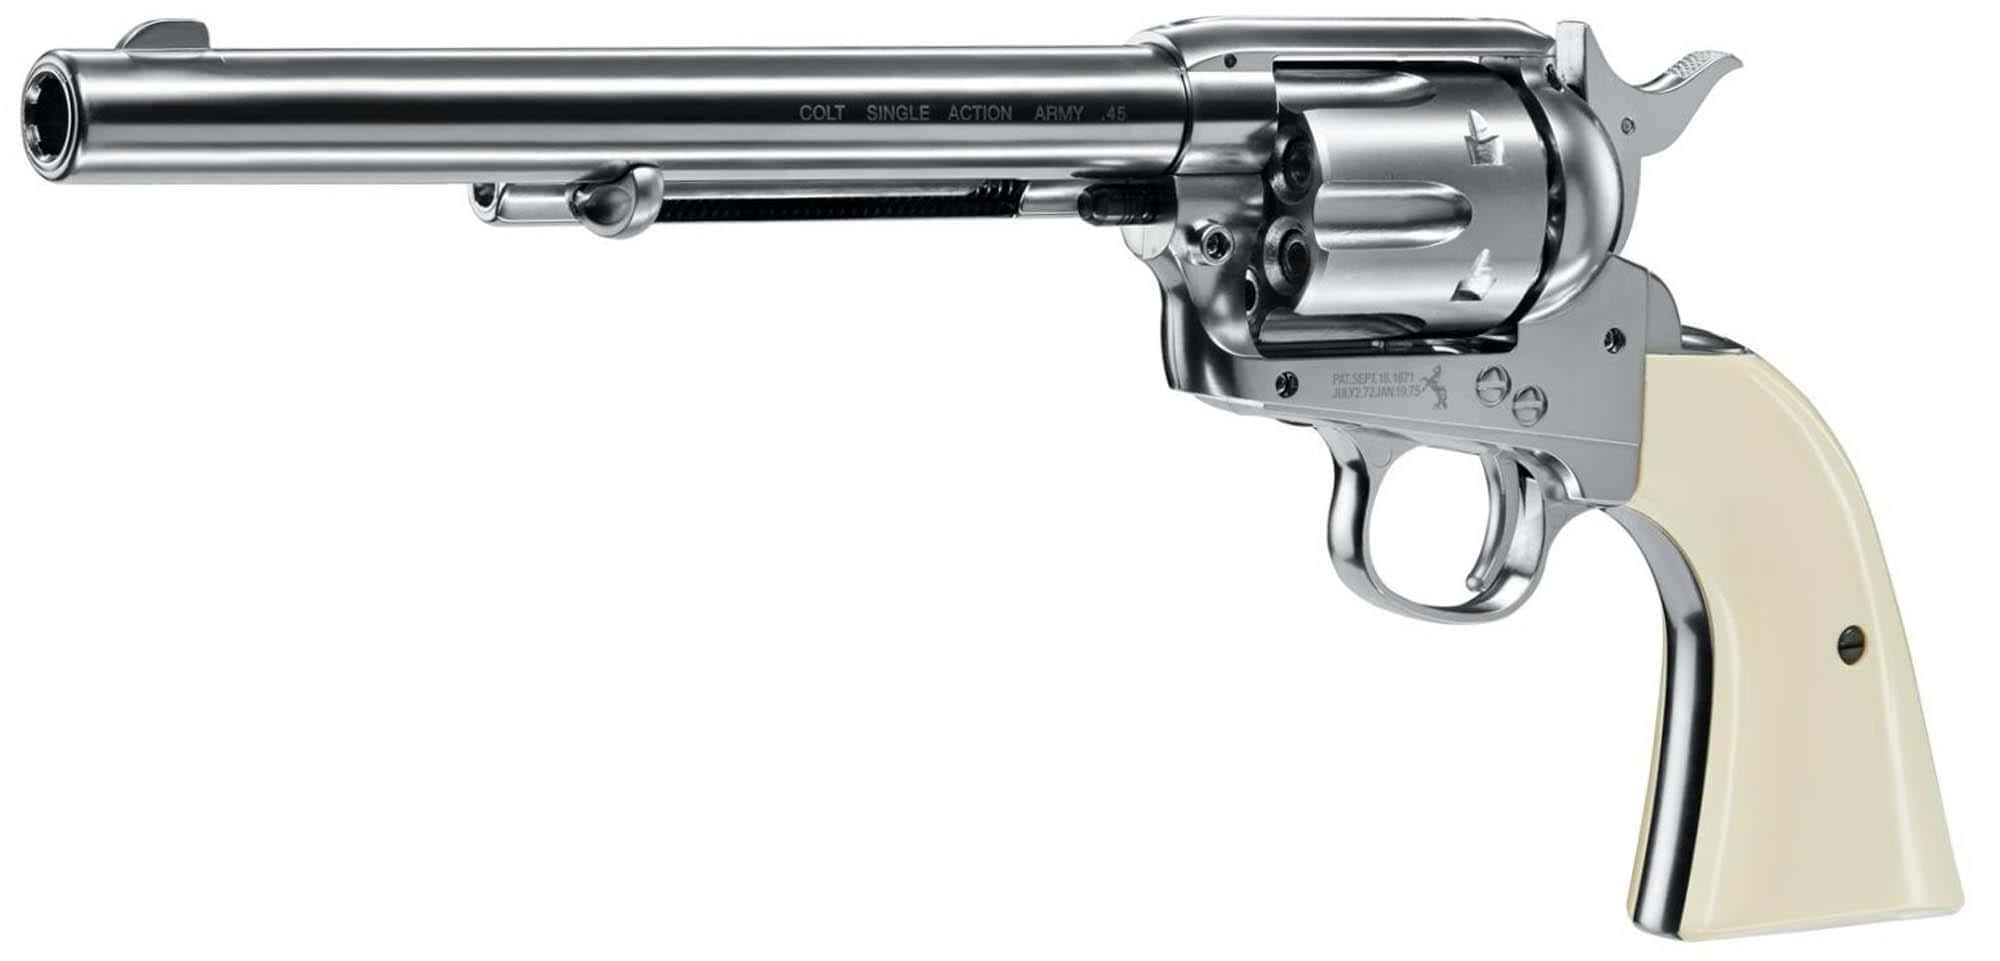 ACP202-Revolver Airgun Colt single action .45 nickel - UMAREX - ACP202